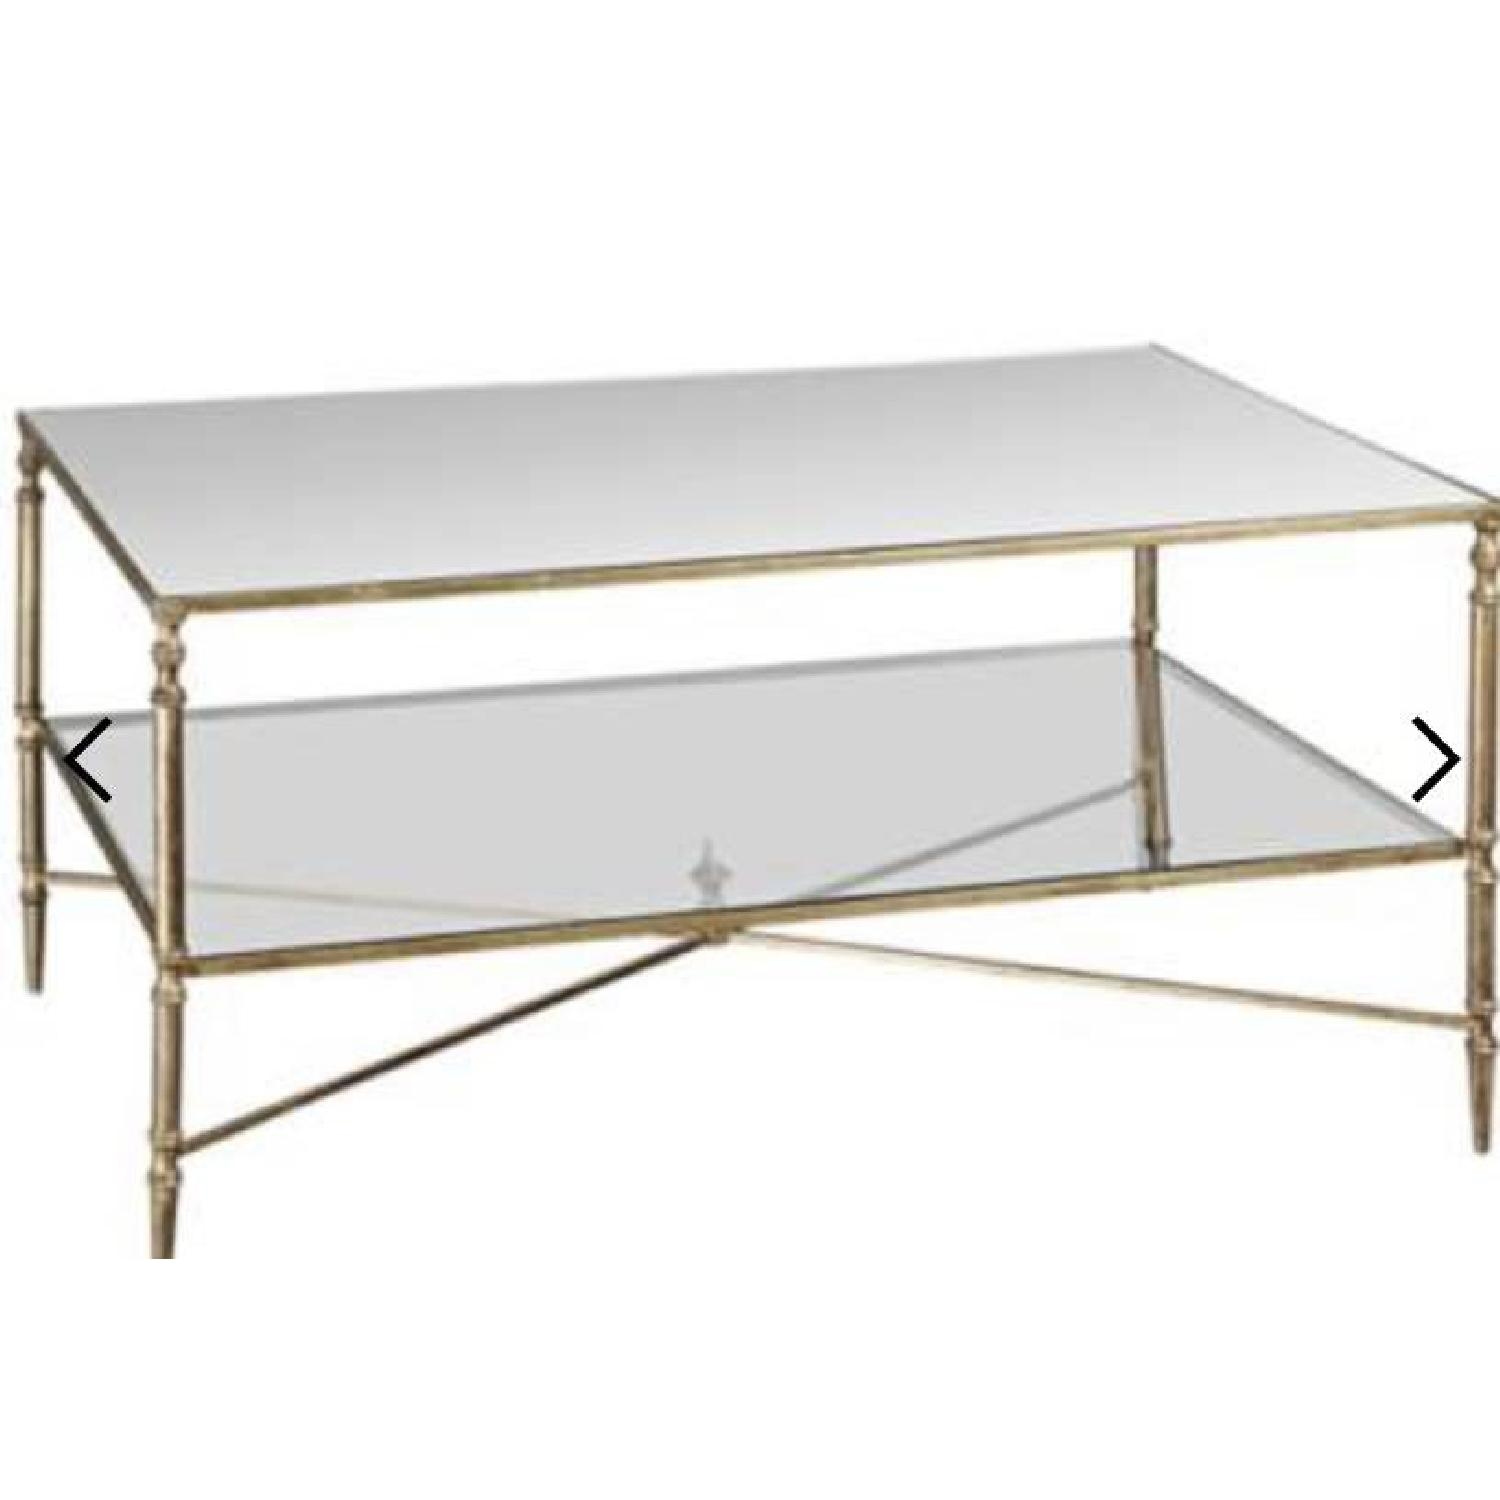 Uttermost Mirrored Glass Coffee Table